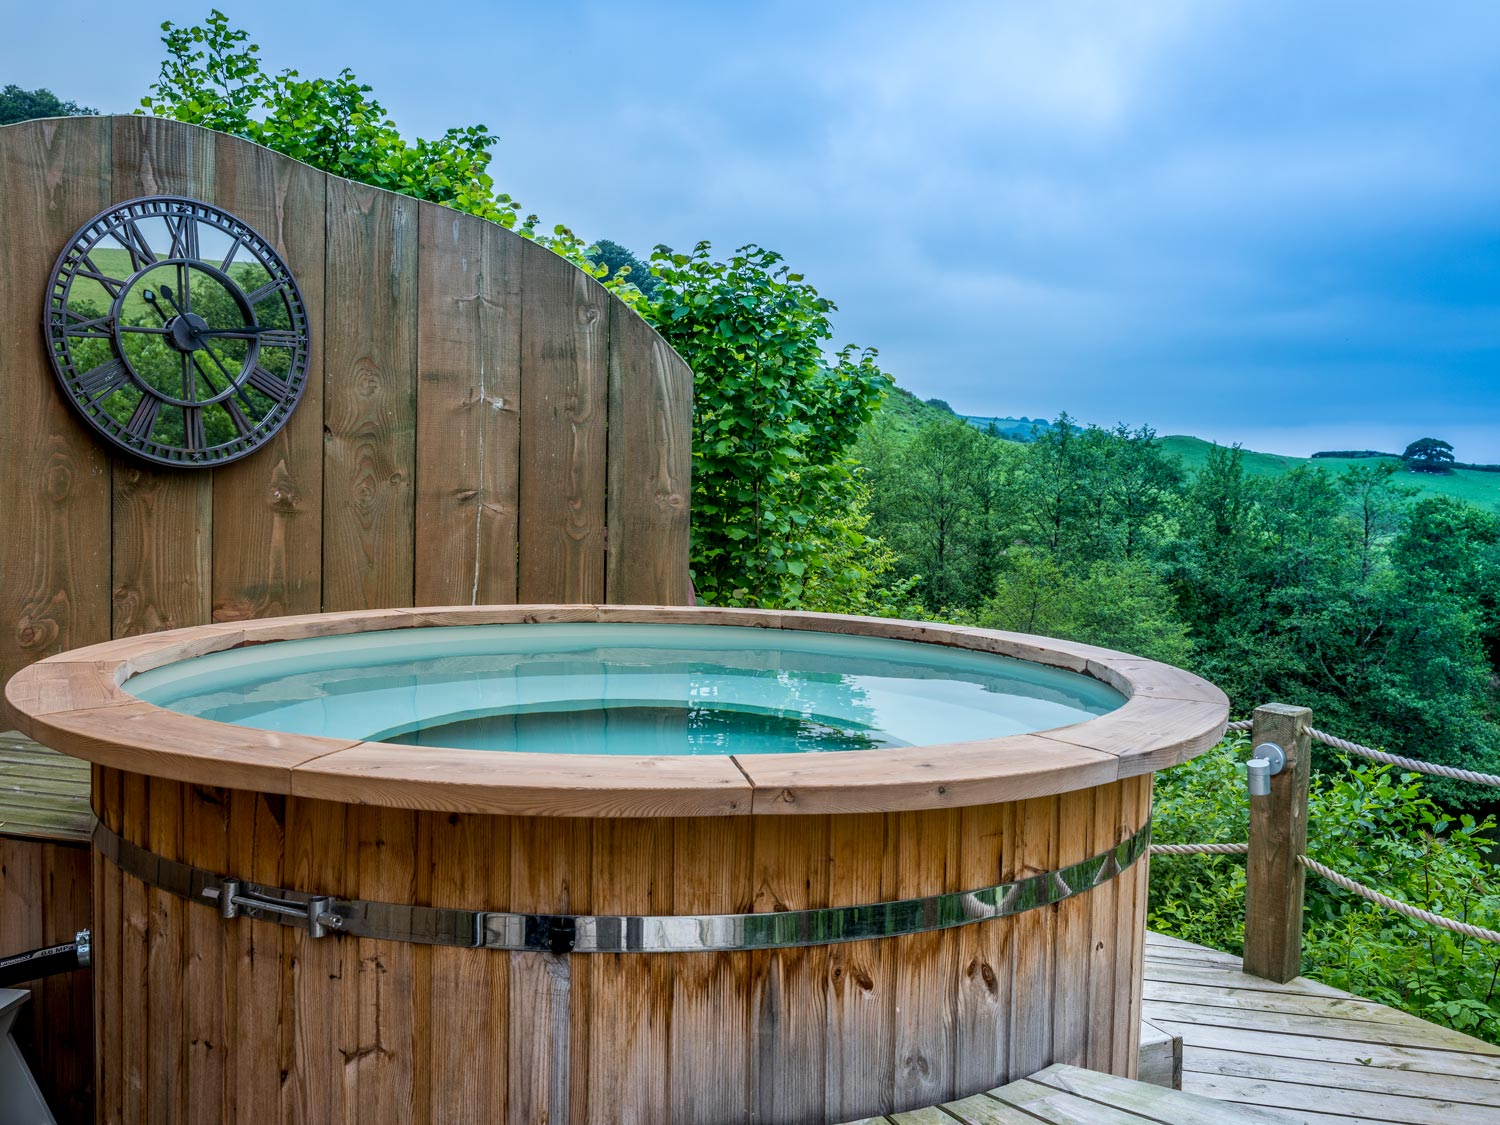 Enjoy luxury glamping with hot tub amongst beautiful Devonshire countryside.